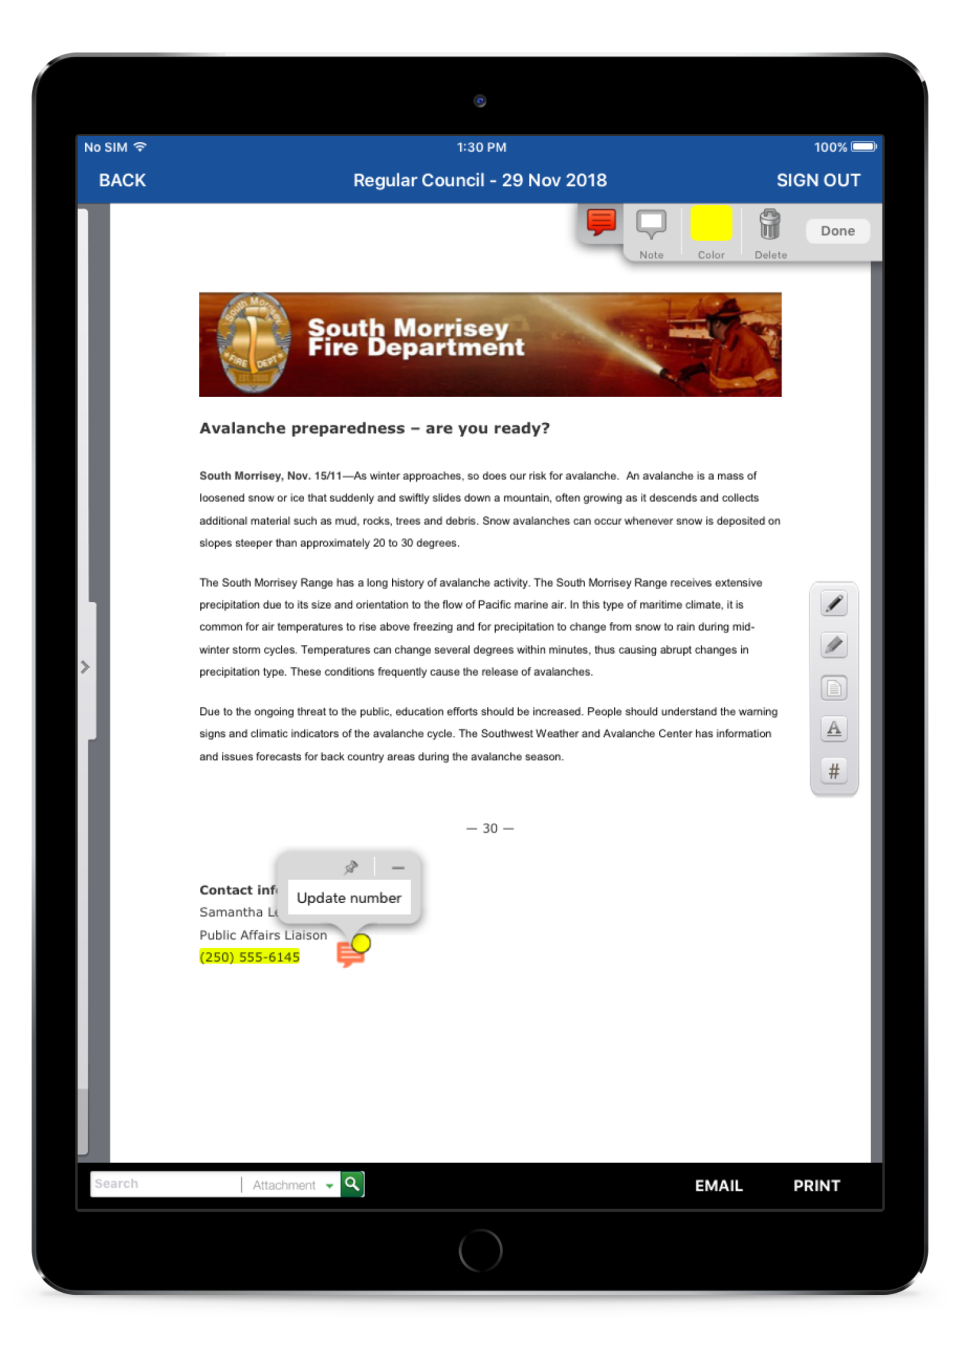 iCompass approval & review for documents screenshot